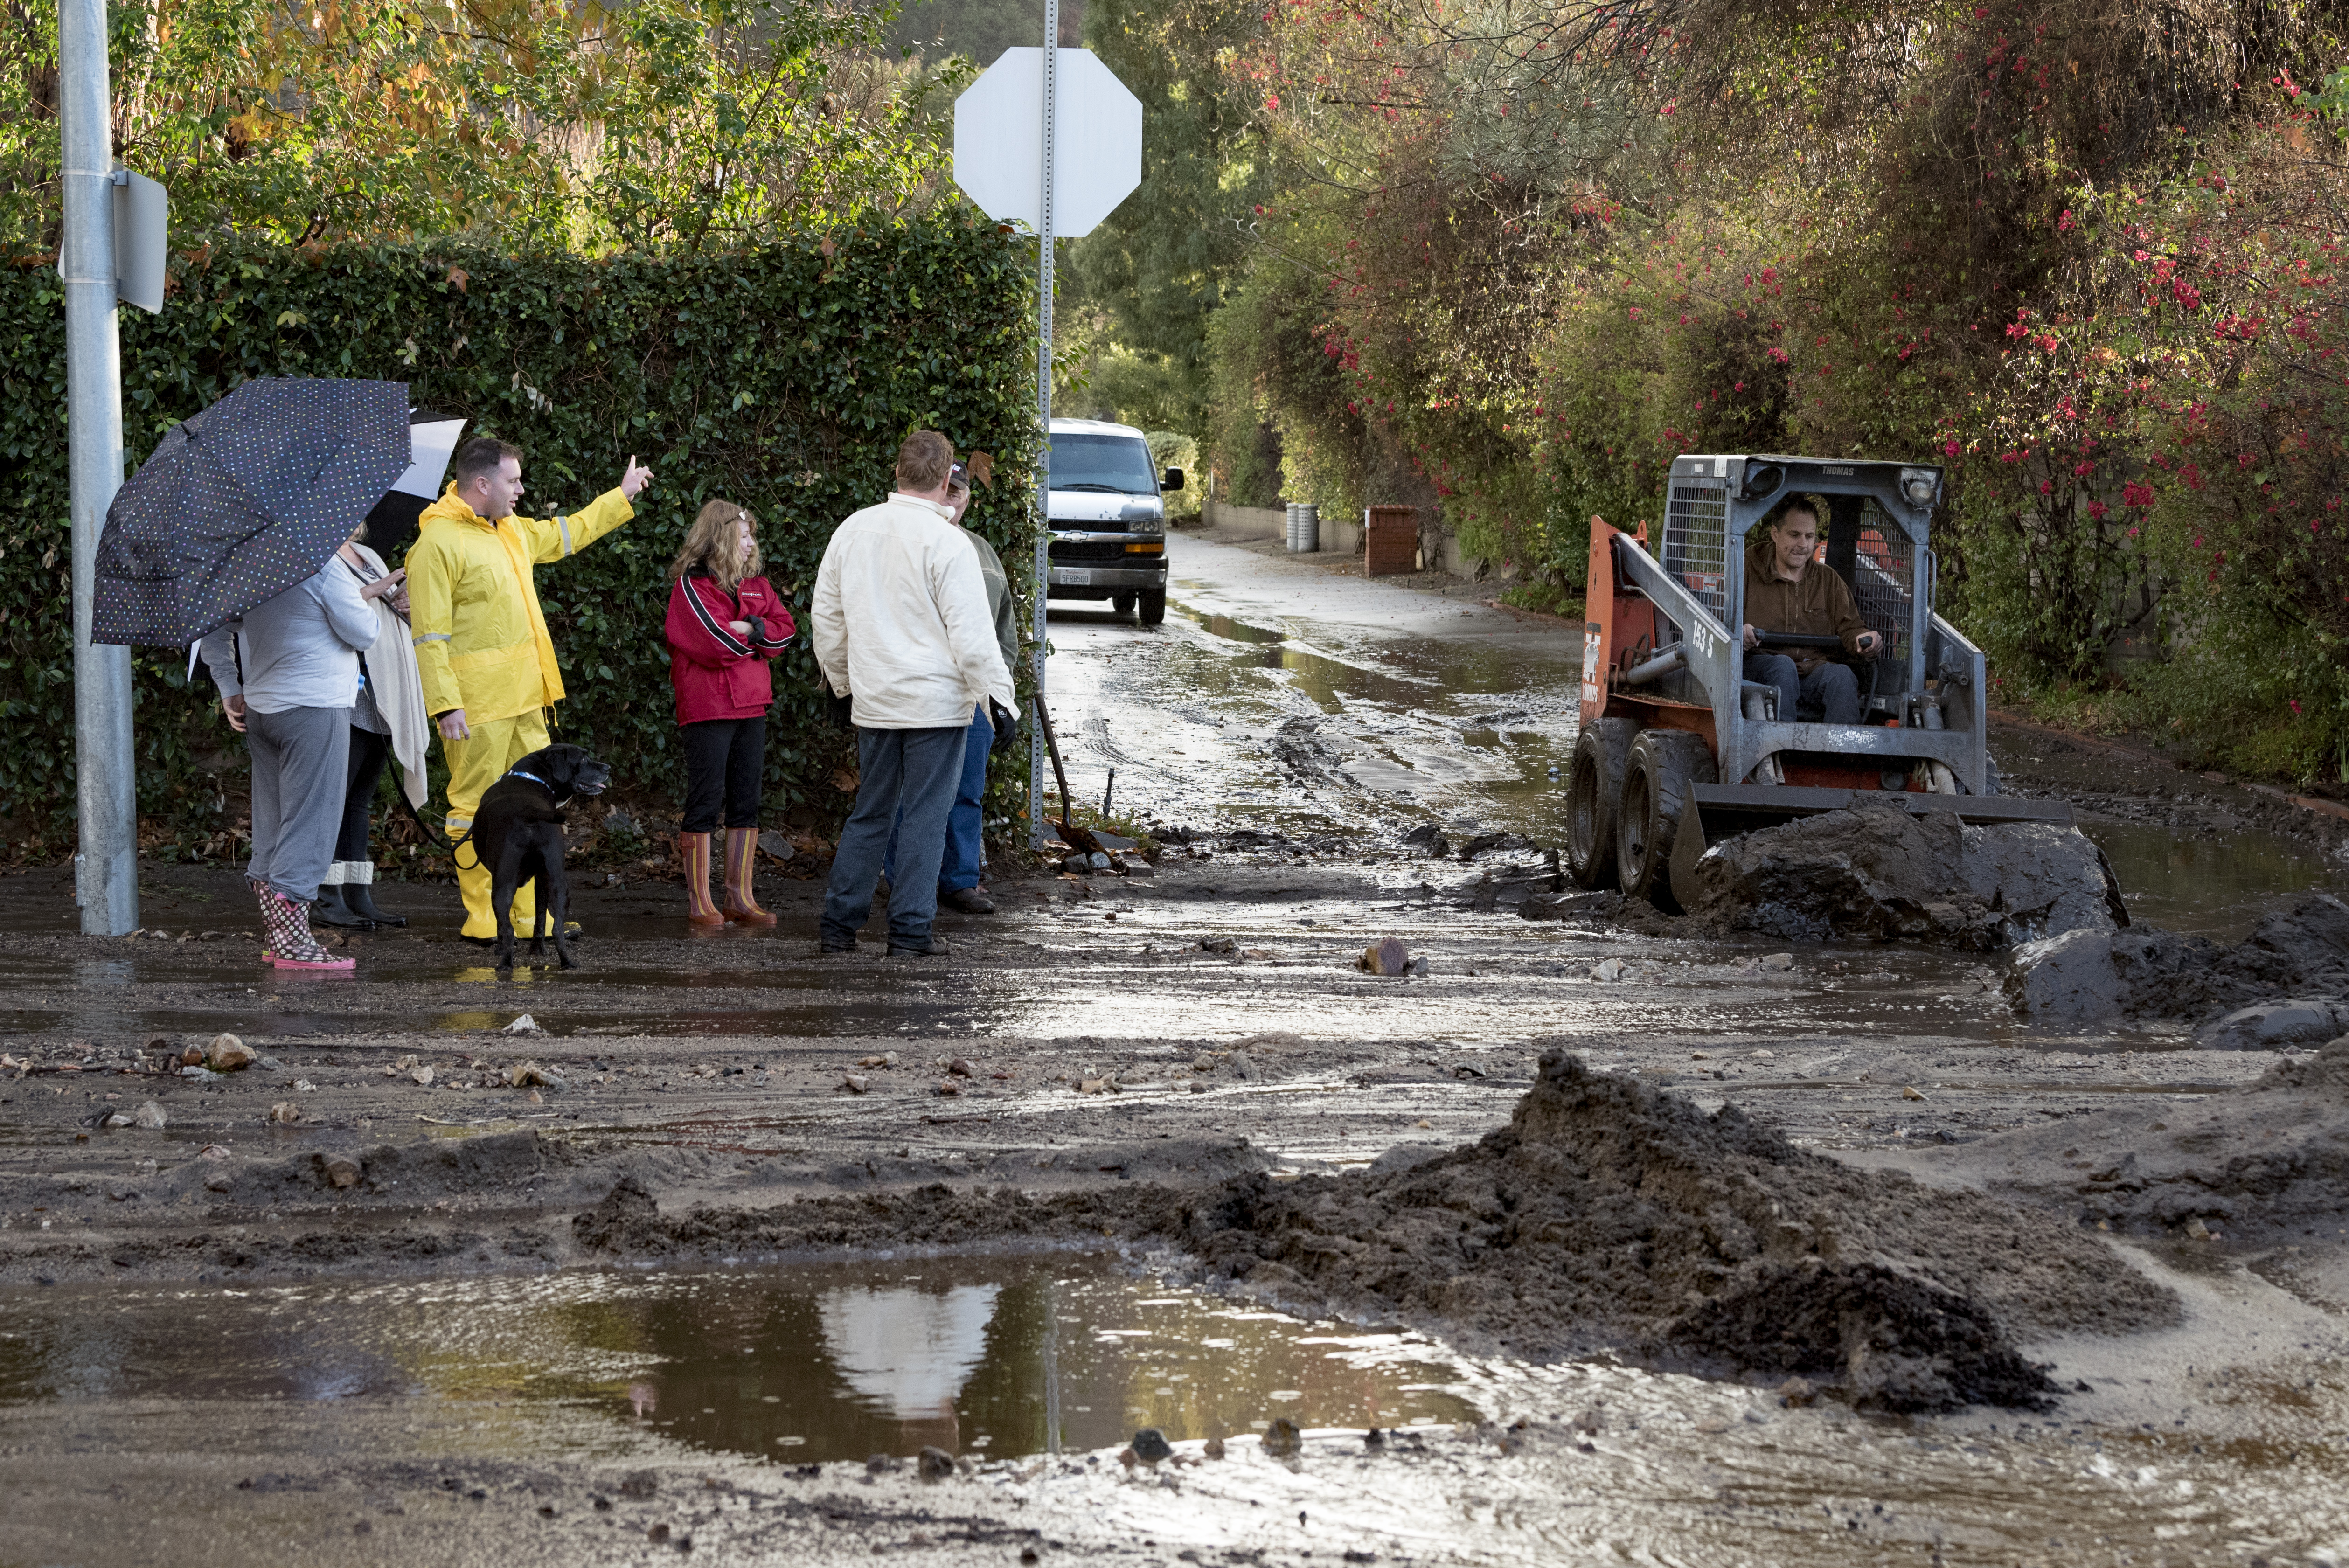 Residents look on as a man clears debris from a mudslide in Los Angeles, California on January 9, 2018. The deadly storm claimed the lives of 13 people in Santa Barbara County. Flash flooding also occurred in the recently burned areas of Ventura and Los Angeles counties.